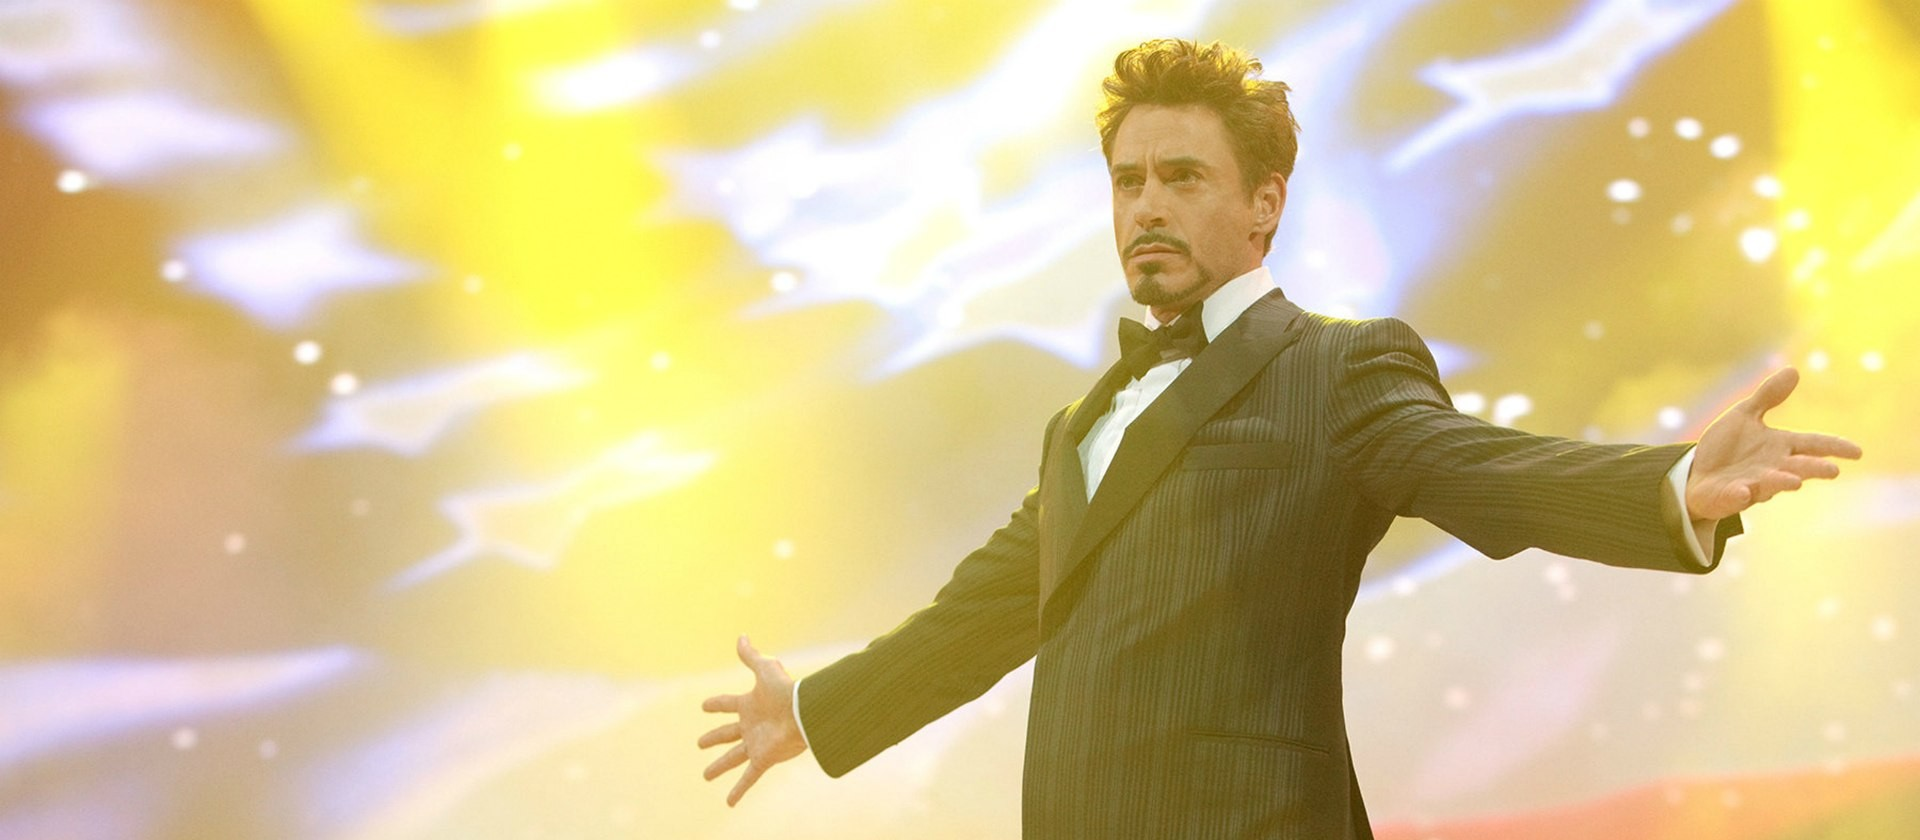 tony-stark-robert-downey-stage-iron-man_1389685528